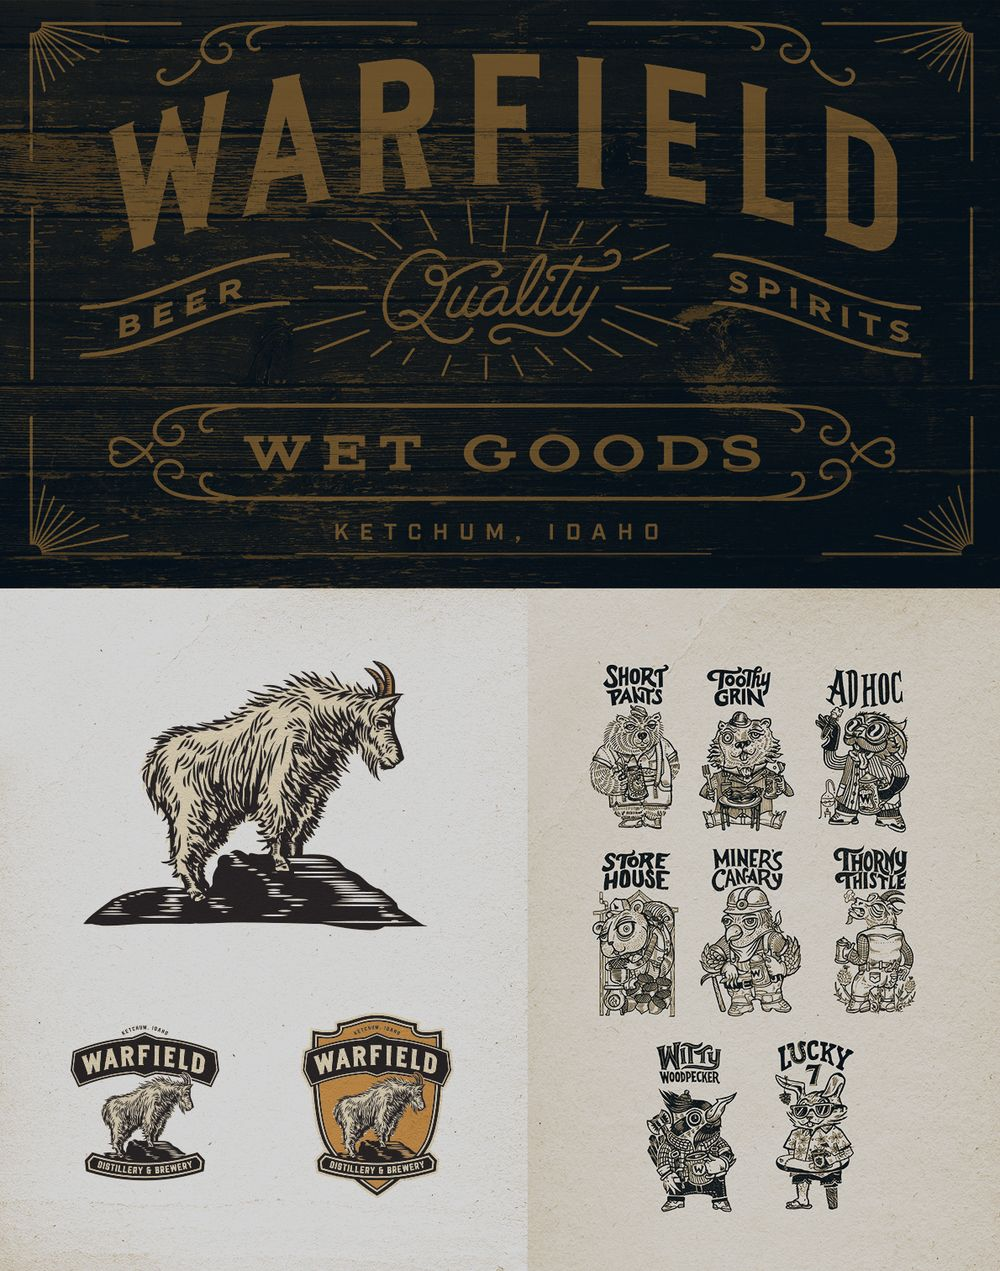 Tucked in the mountains of Idaho is Sun Valley, a small ski town that  offers year-round activities and endless natural beauty. Conrad Garner  developed the branding and packaging for Warfield Distillery & Brewery, a  place that serves fresh, local beer and artisanal spirits in addition to  seasonal pub fare.